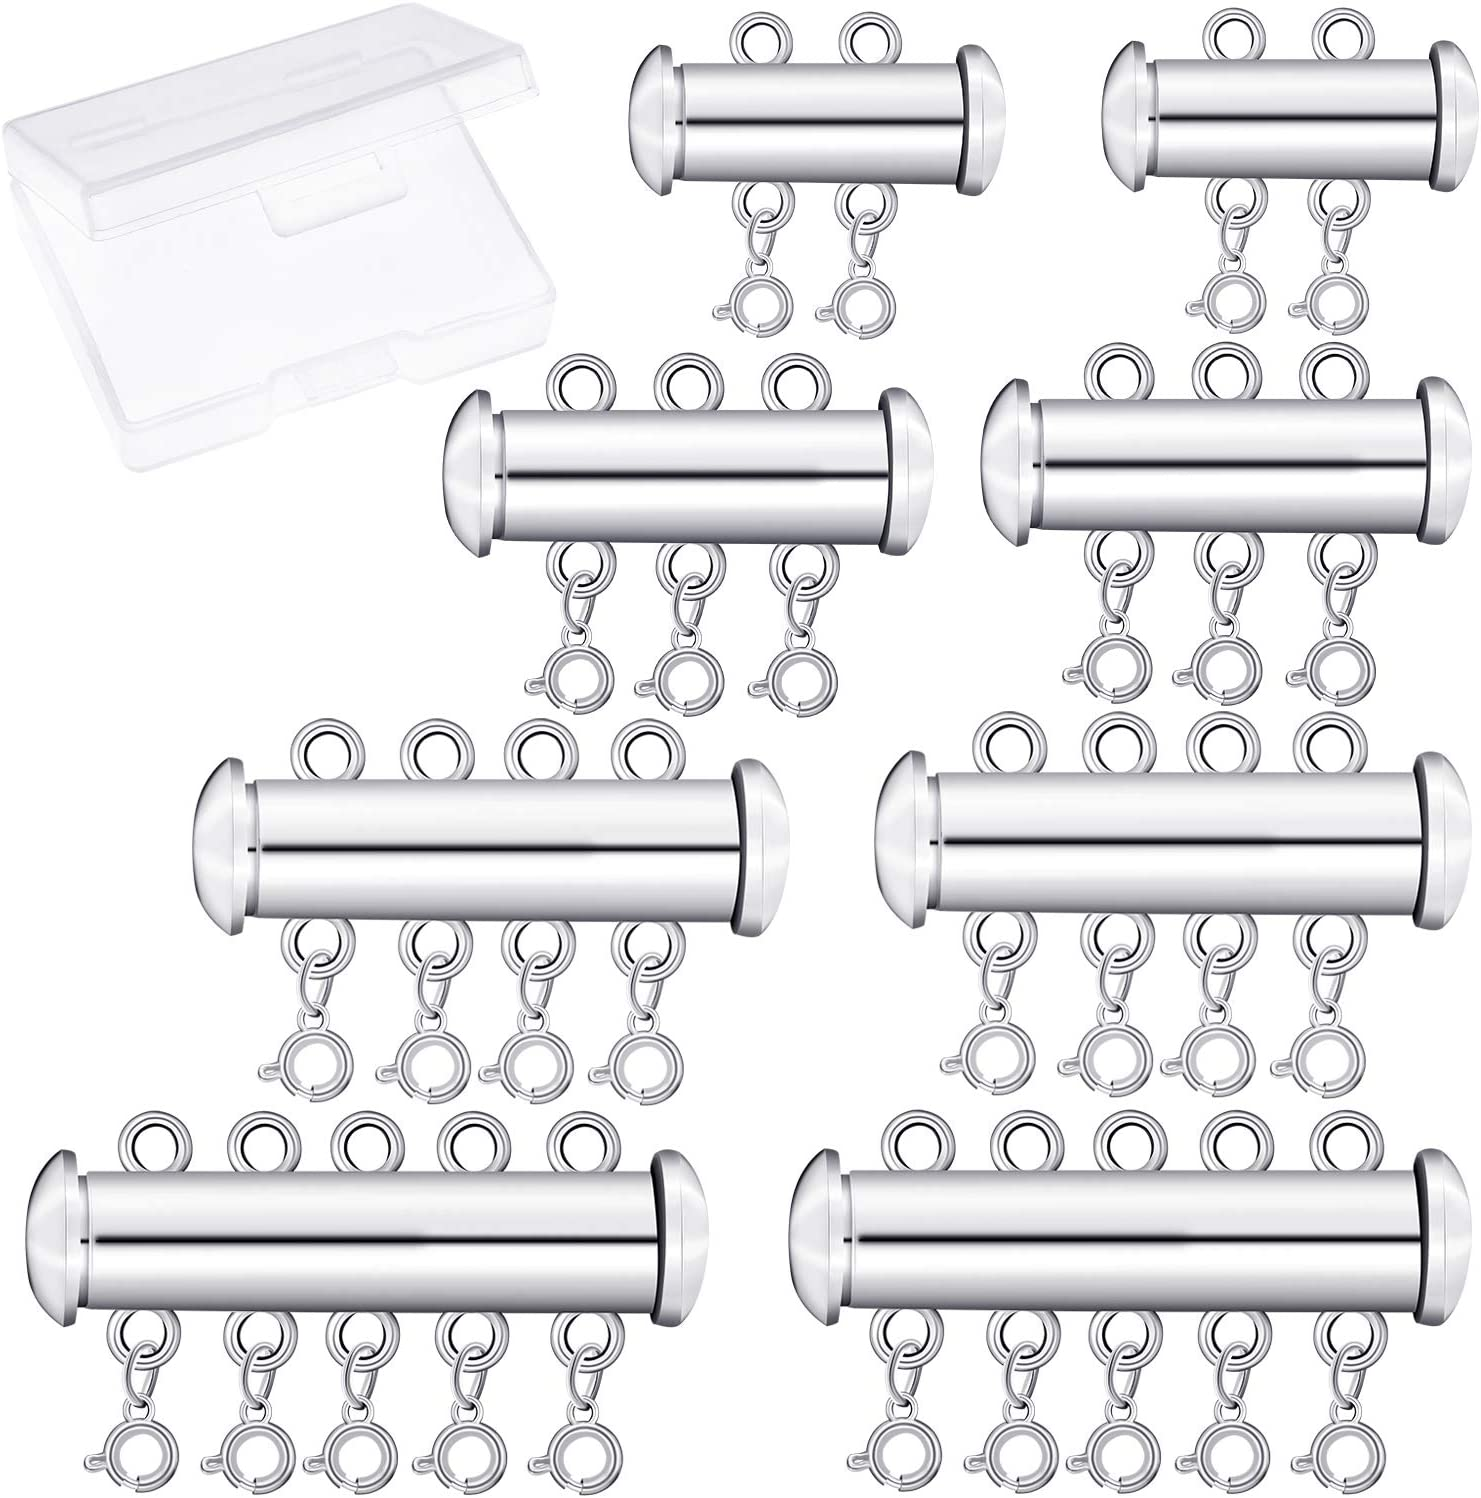 8 Pieces 4 Sizes Slide Clasp Lock Necklace Connector Multi Strands Slide Tube Clasps with Storage Box for Layered Bracelet Necklace Jewelry Crafts (Silver)